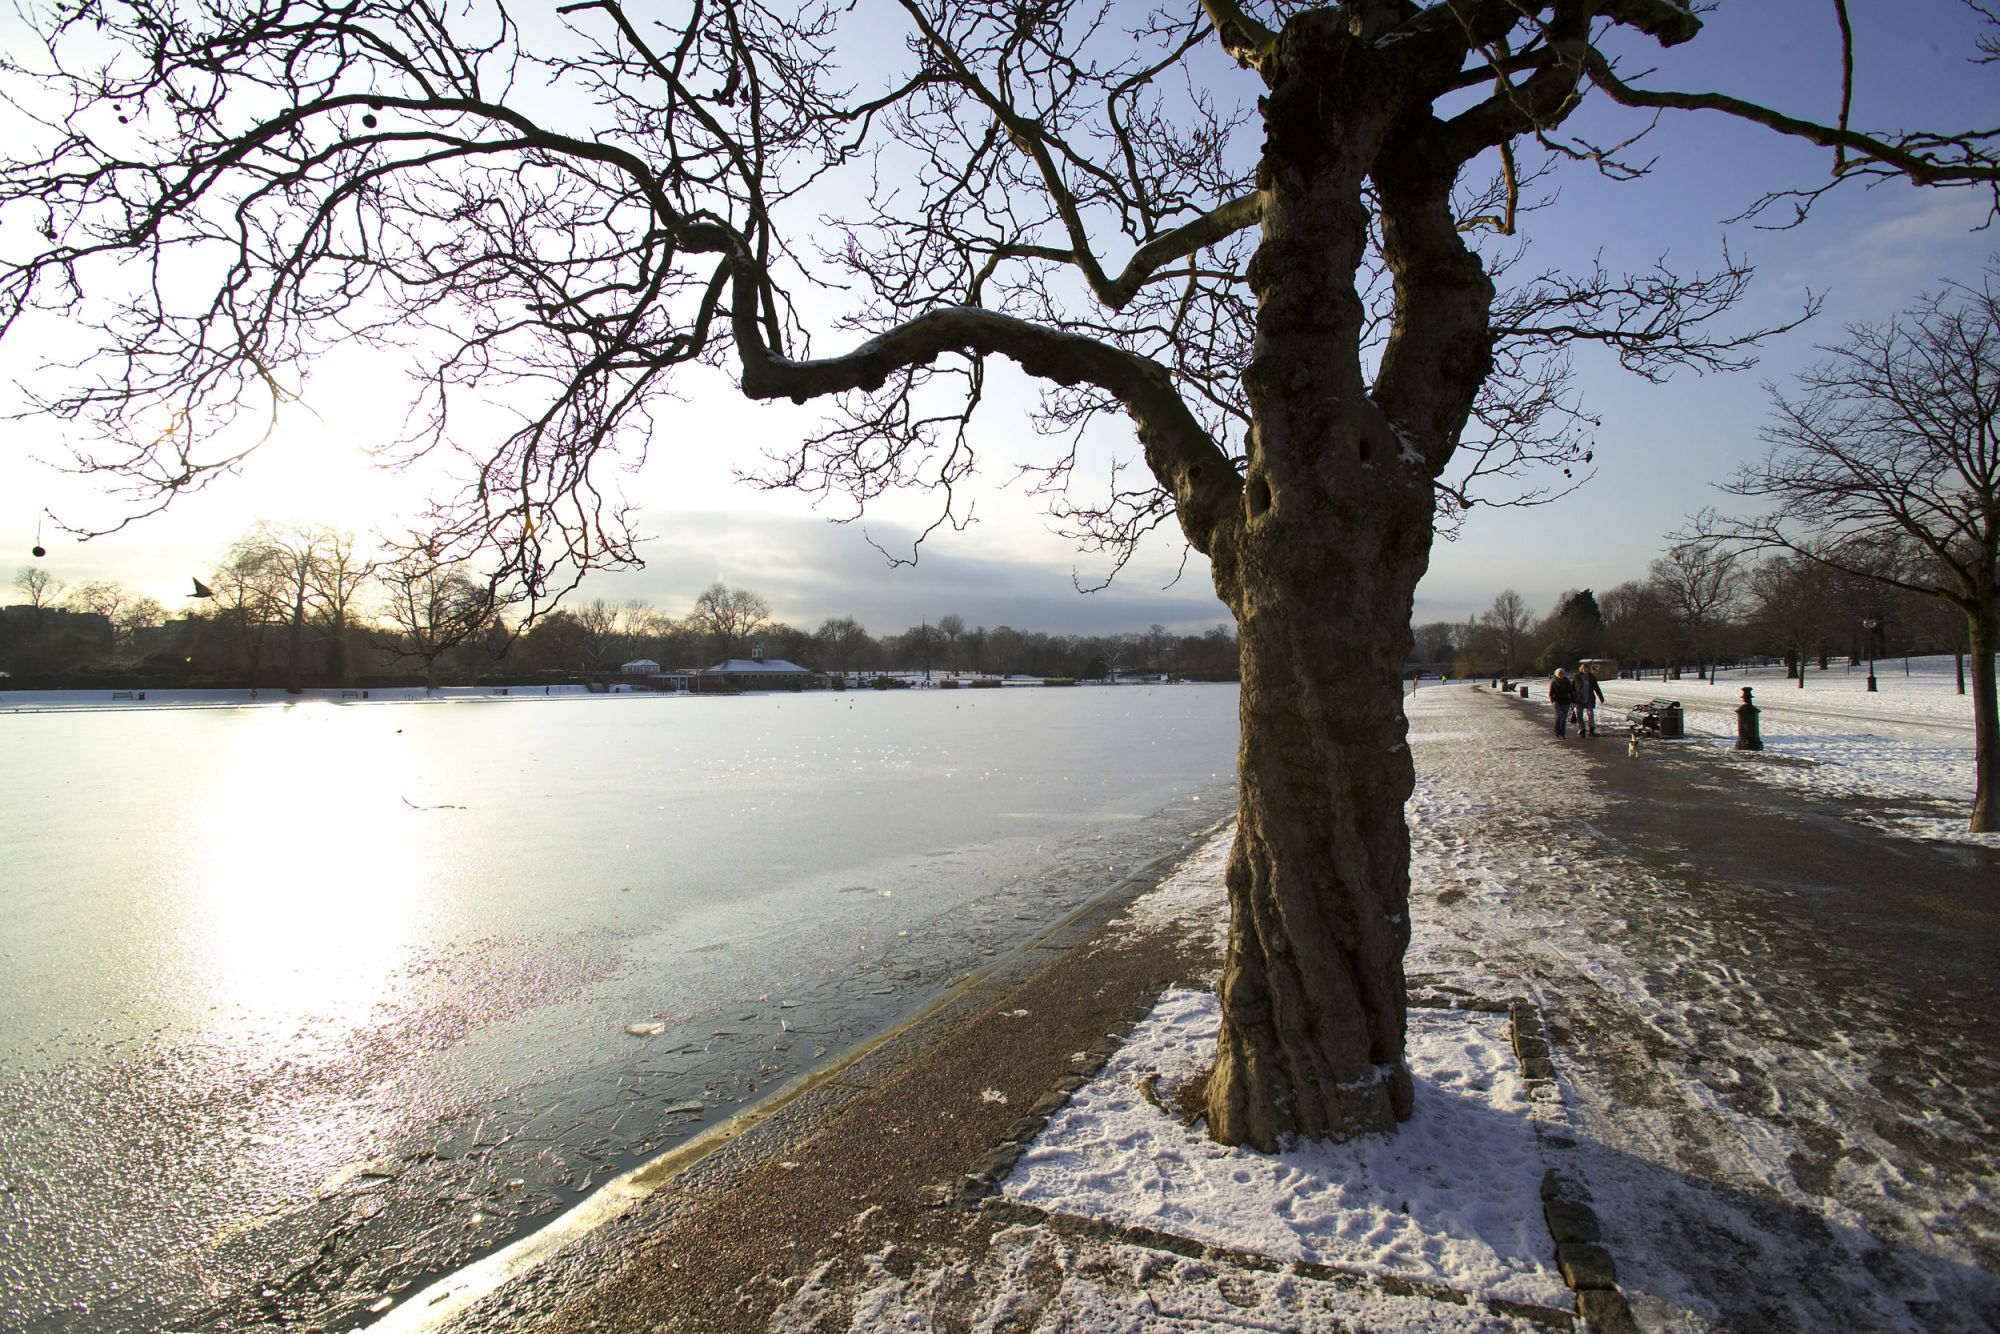 The Serpentine in winter